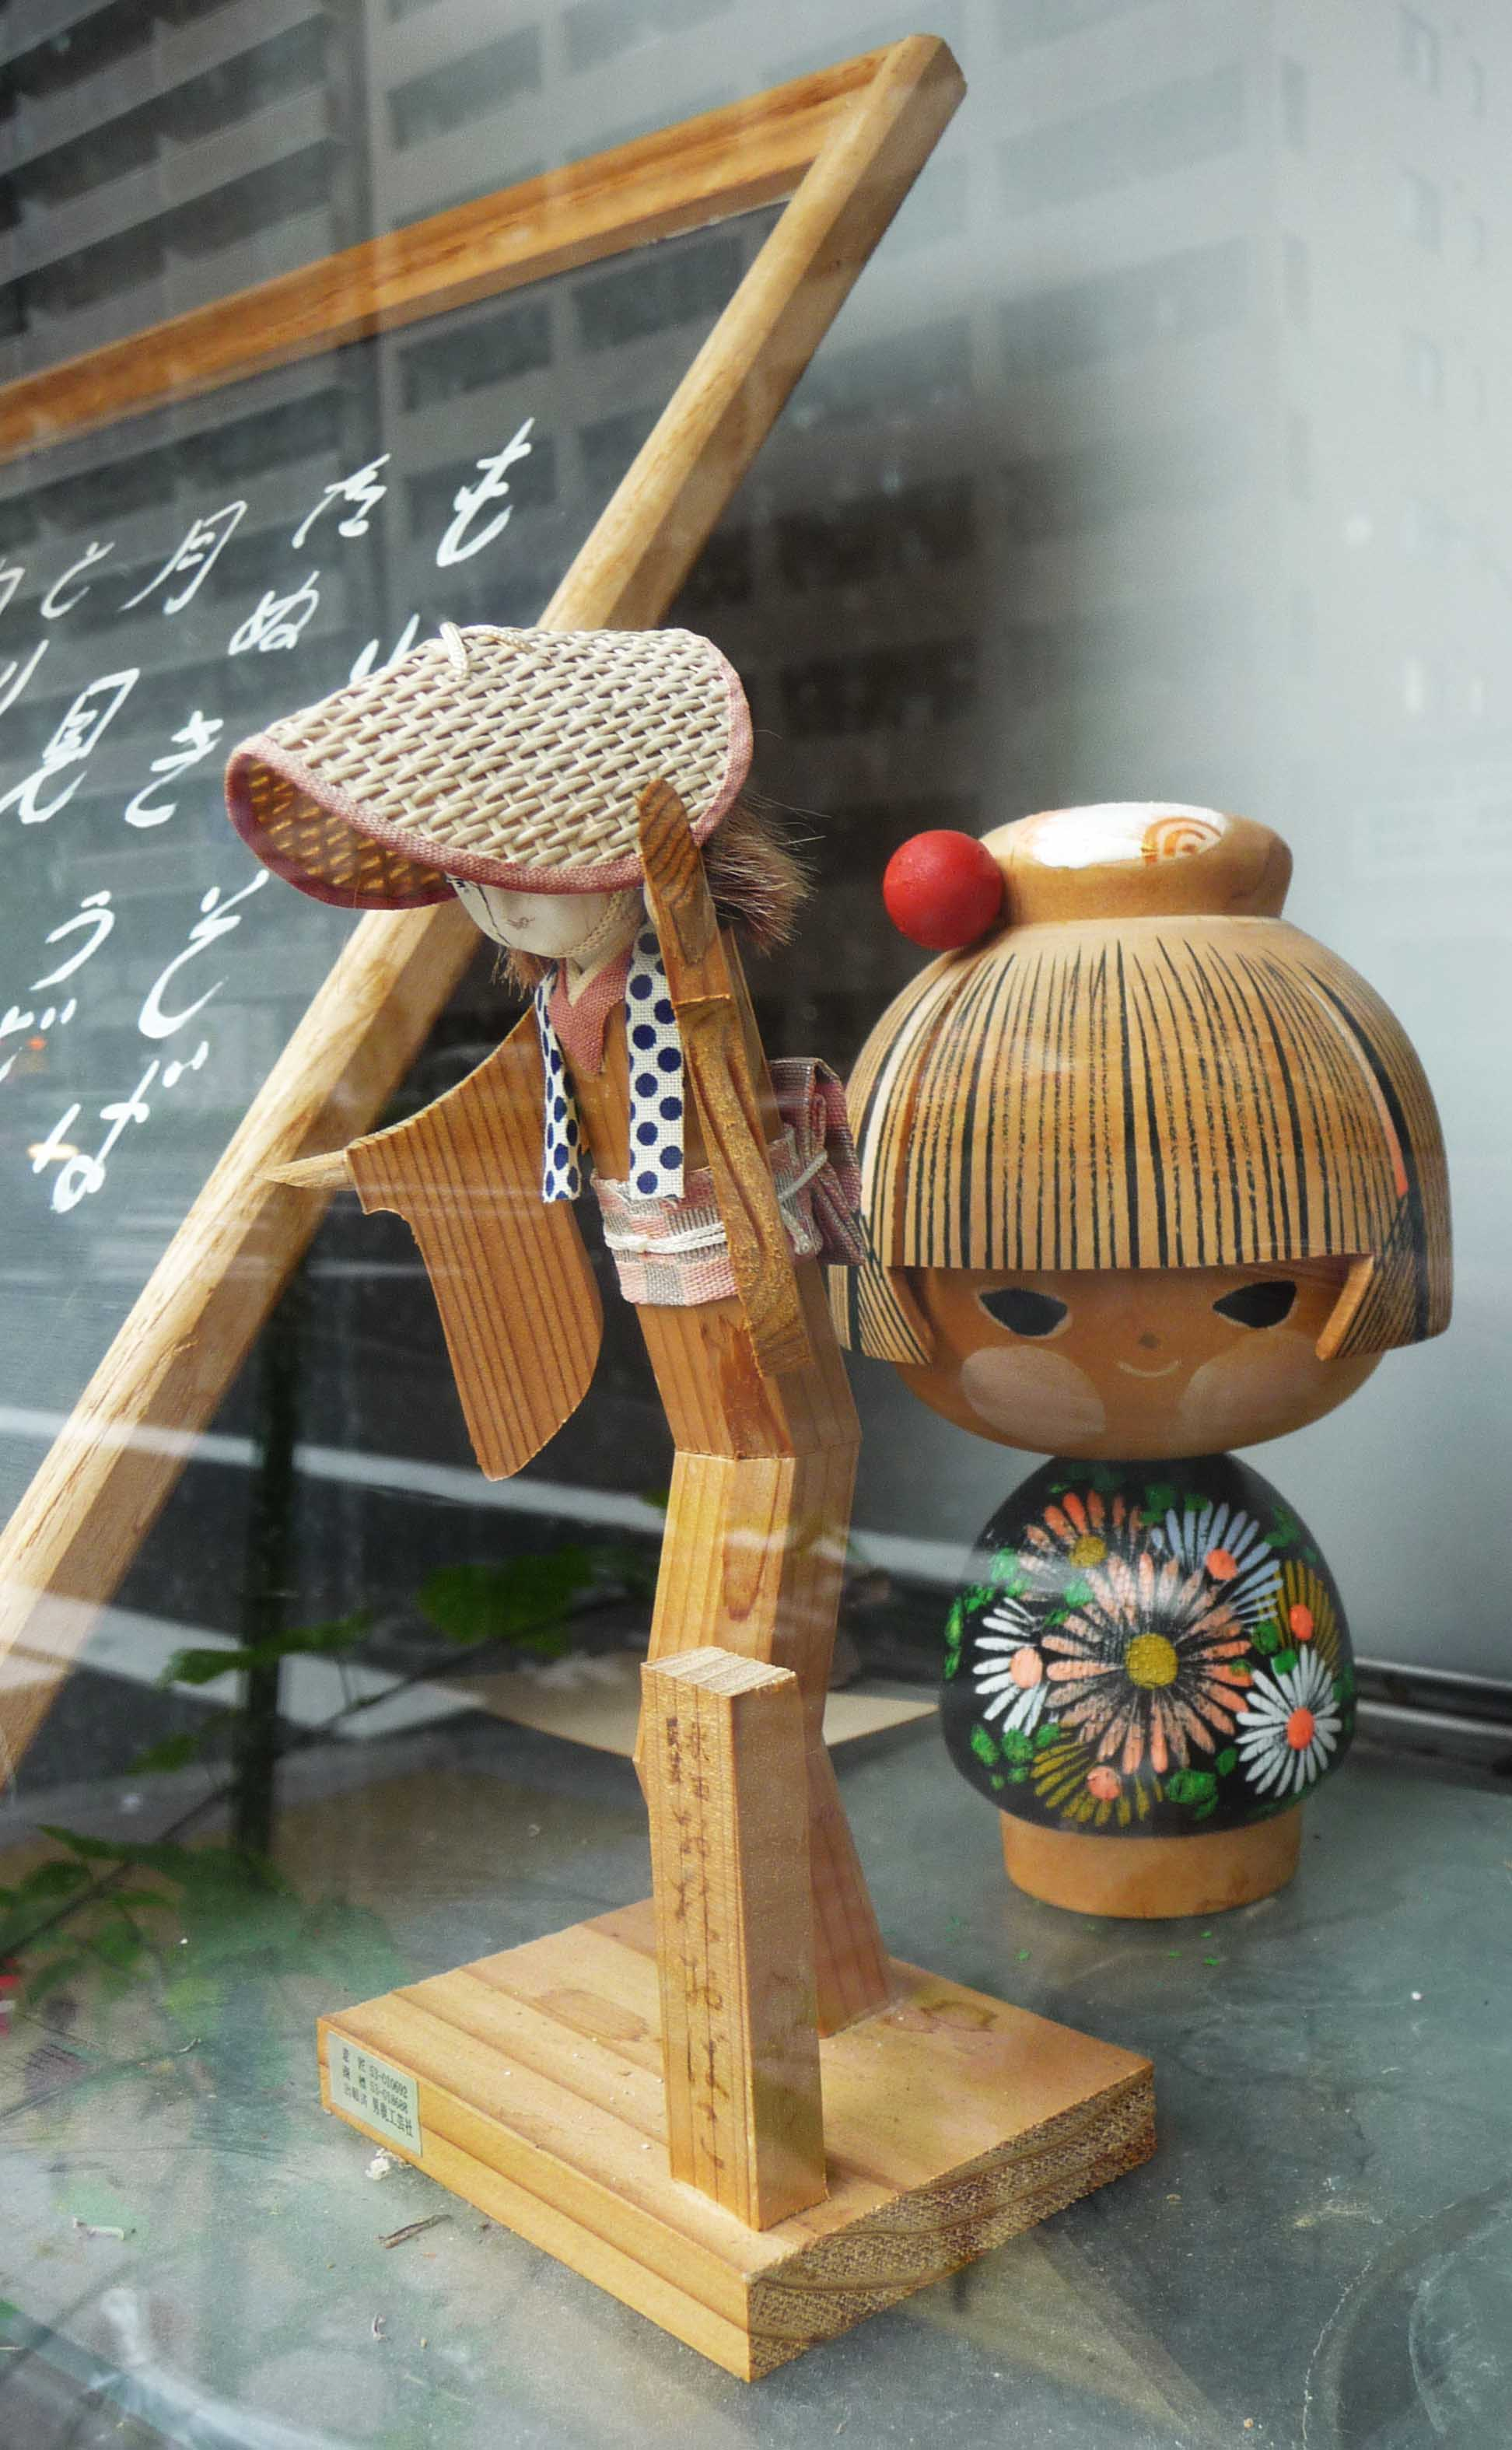 japanese wooden doll | eBay - HD Wallpapers